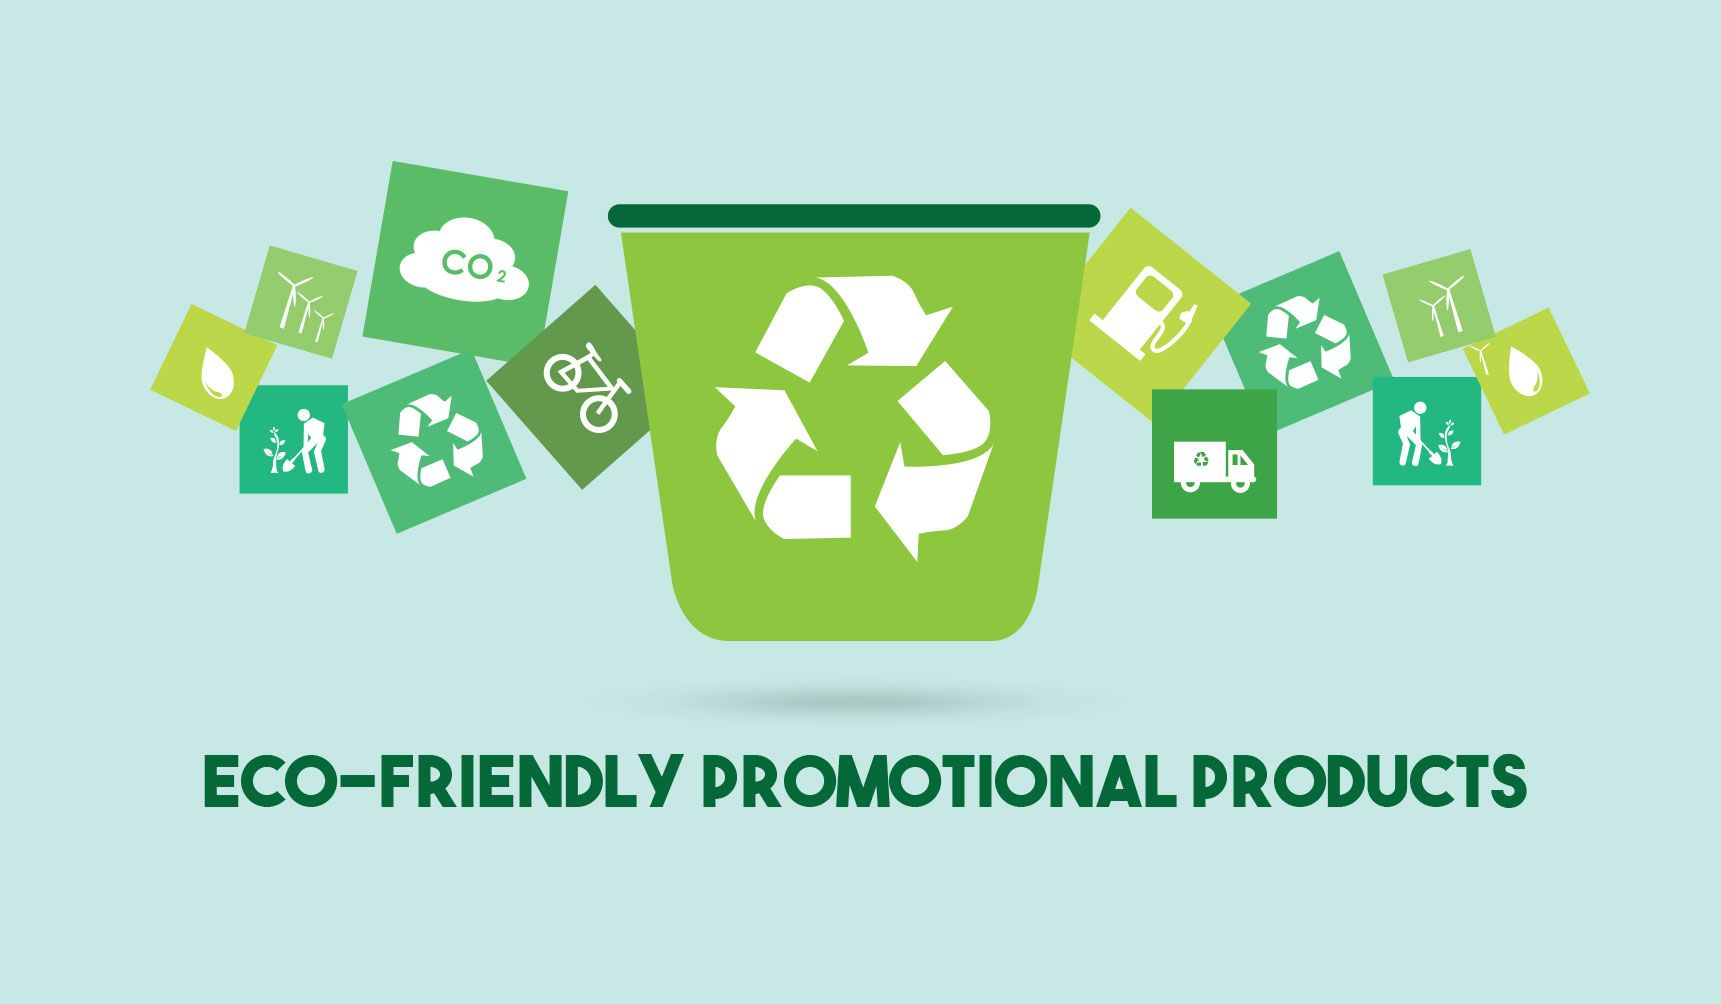 Looking for a green way to advertise? Our large selection of eco-friendly promotional products are great for both the environment and your brand! ‪#‎earthday‬ ‪#‎ecofriendly‬ ‪#‎green‬ ‪#‎greenliving‬ ‪#‎sustainability‬